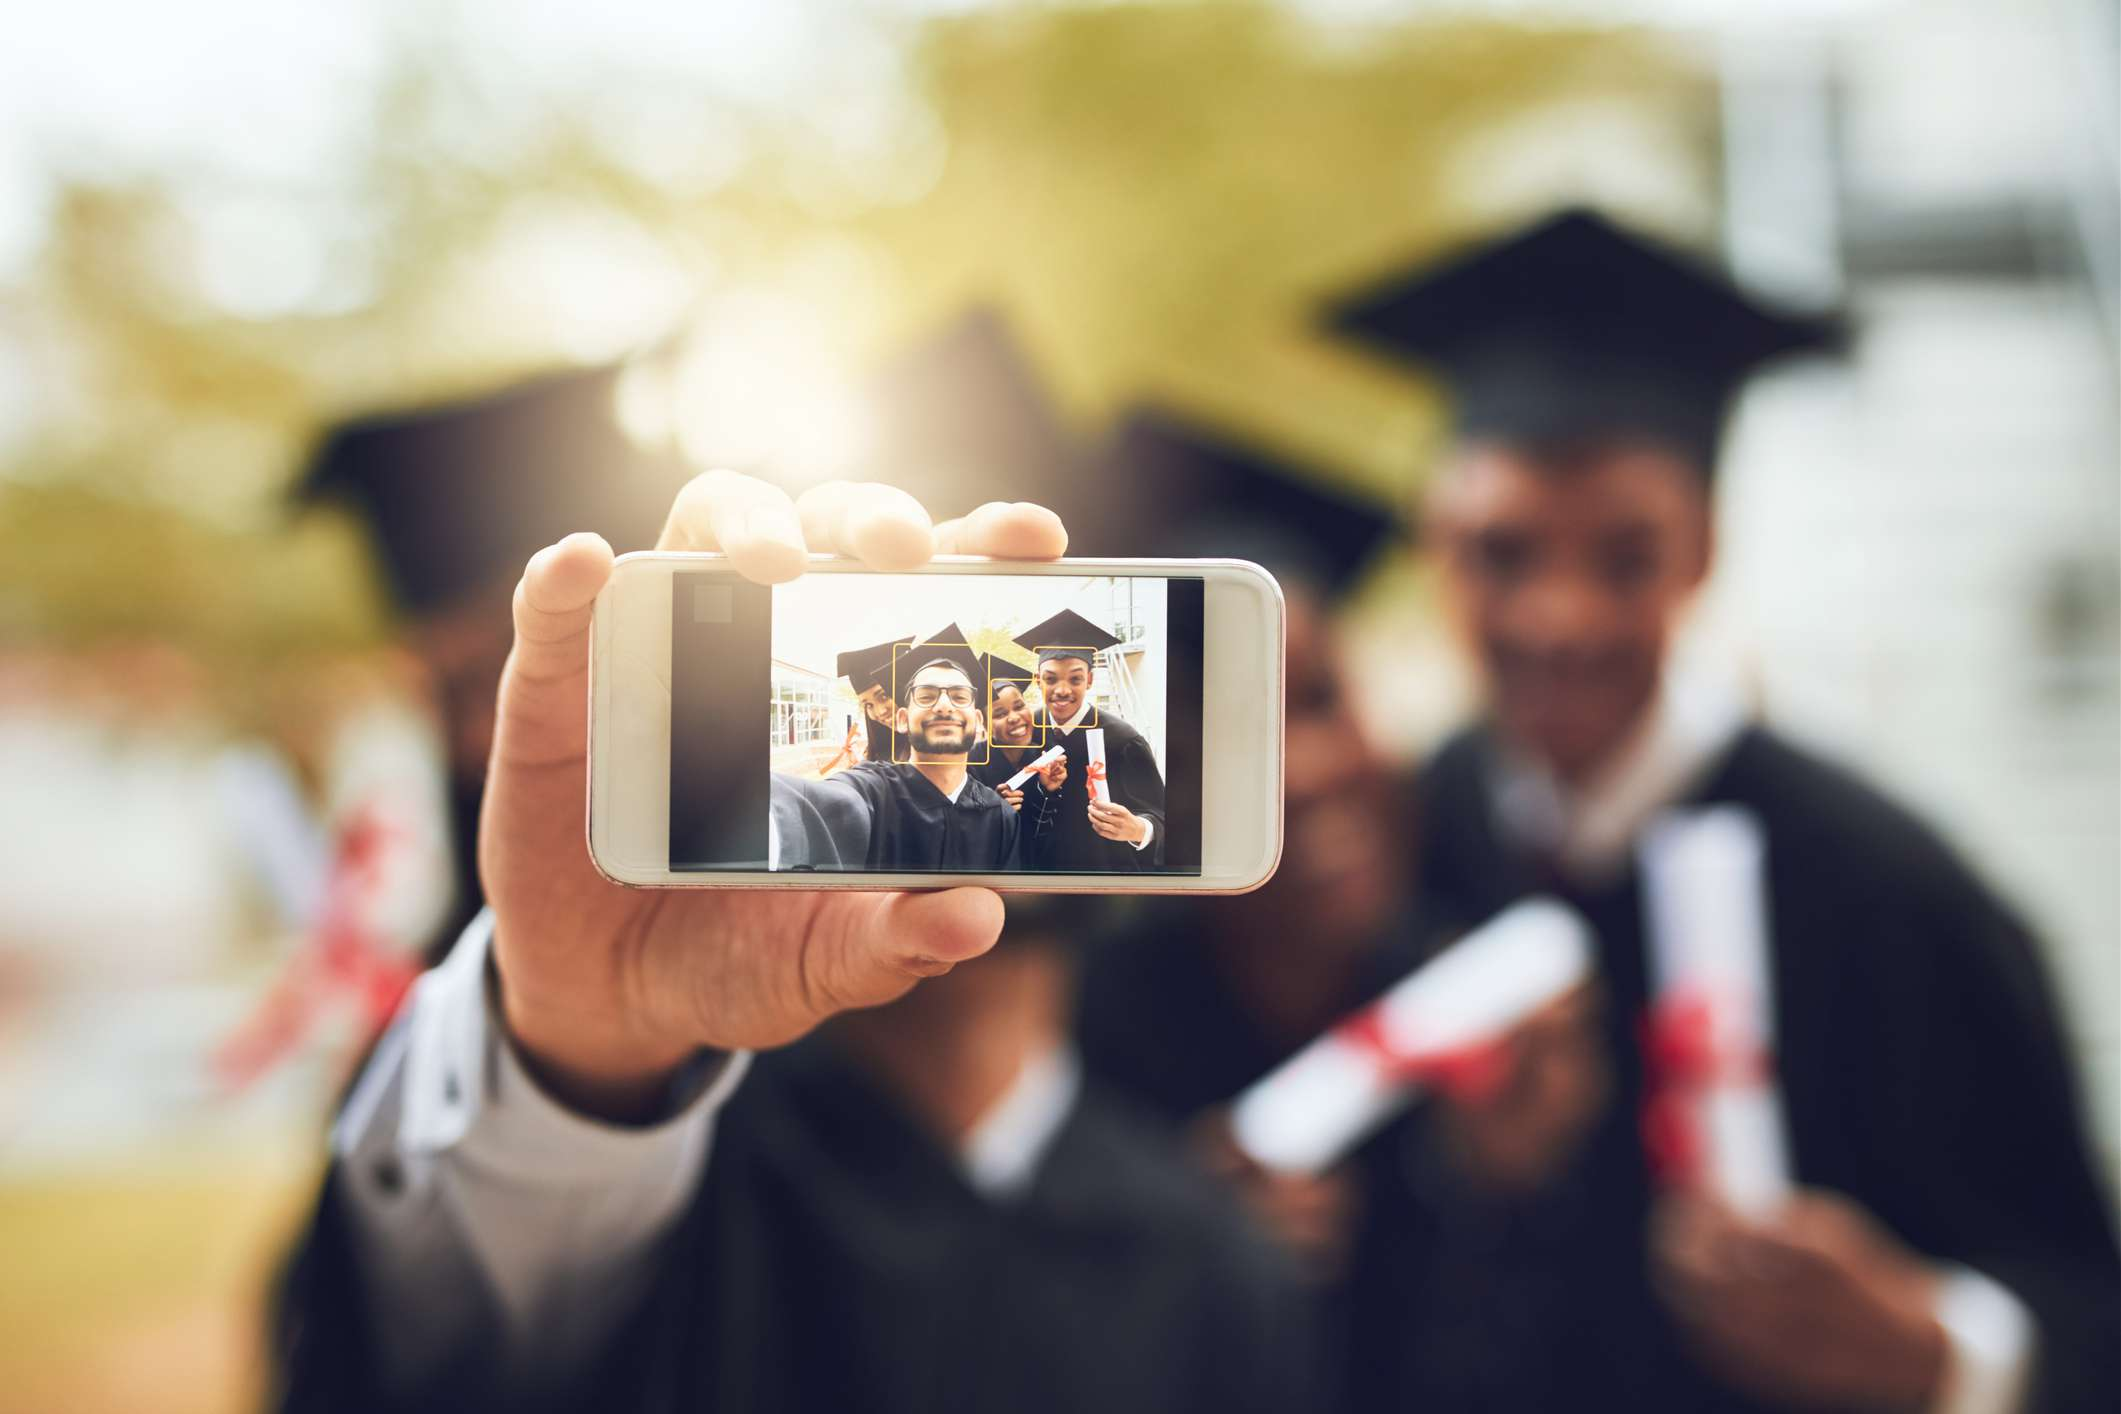 A group of graduates taking a smartphone selfie with facial recognition enabled.